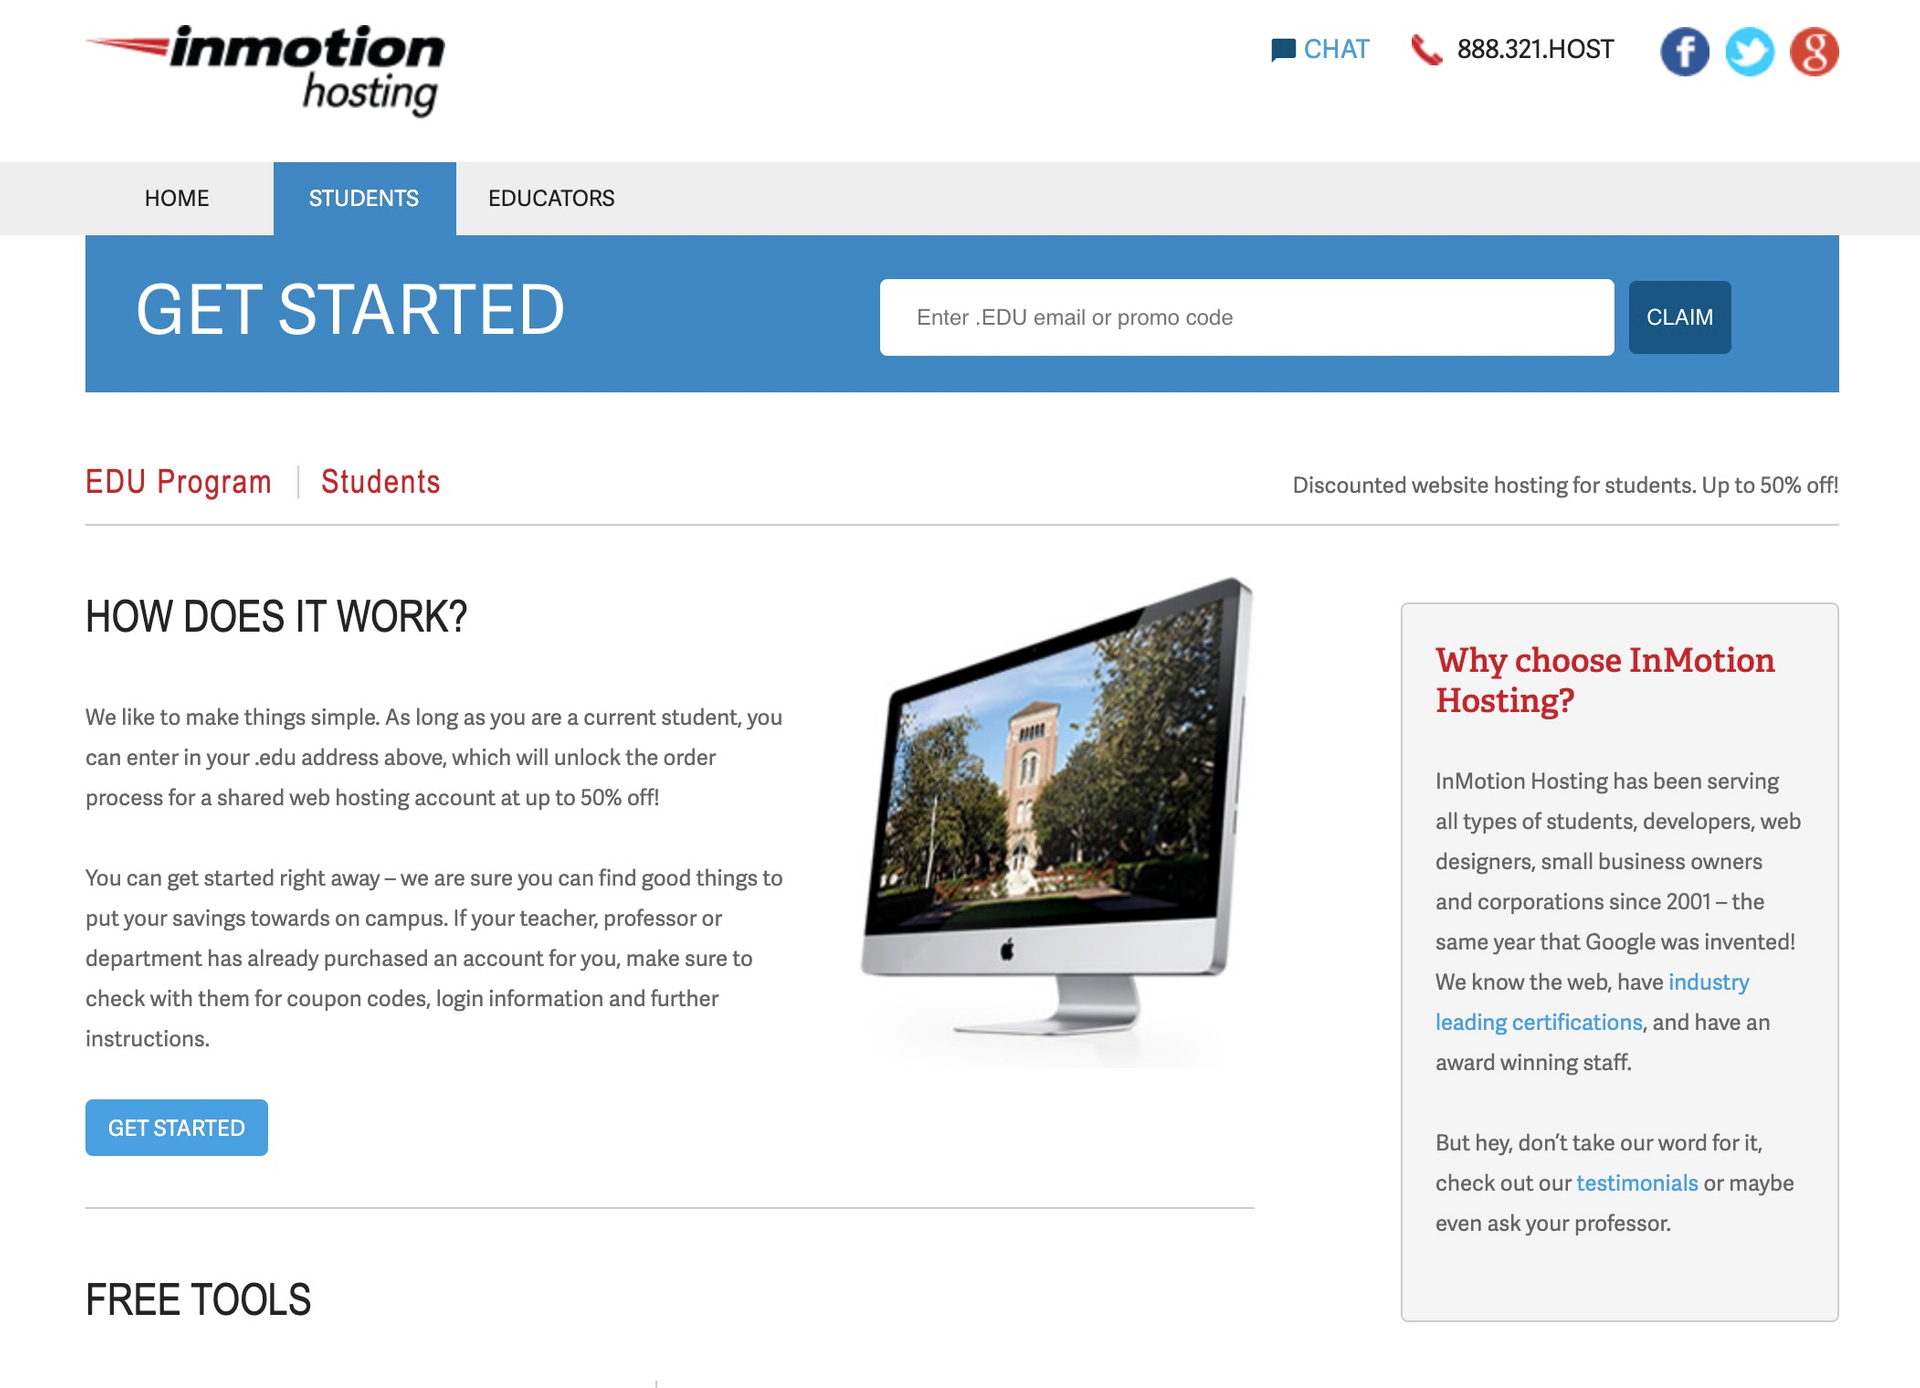 The details for InMotion's student discounted hosting